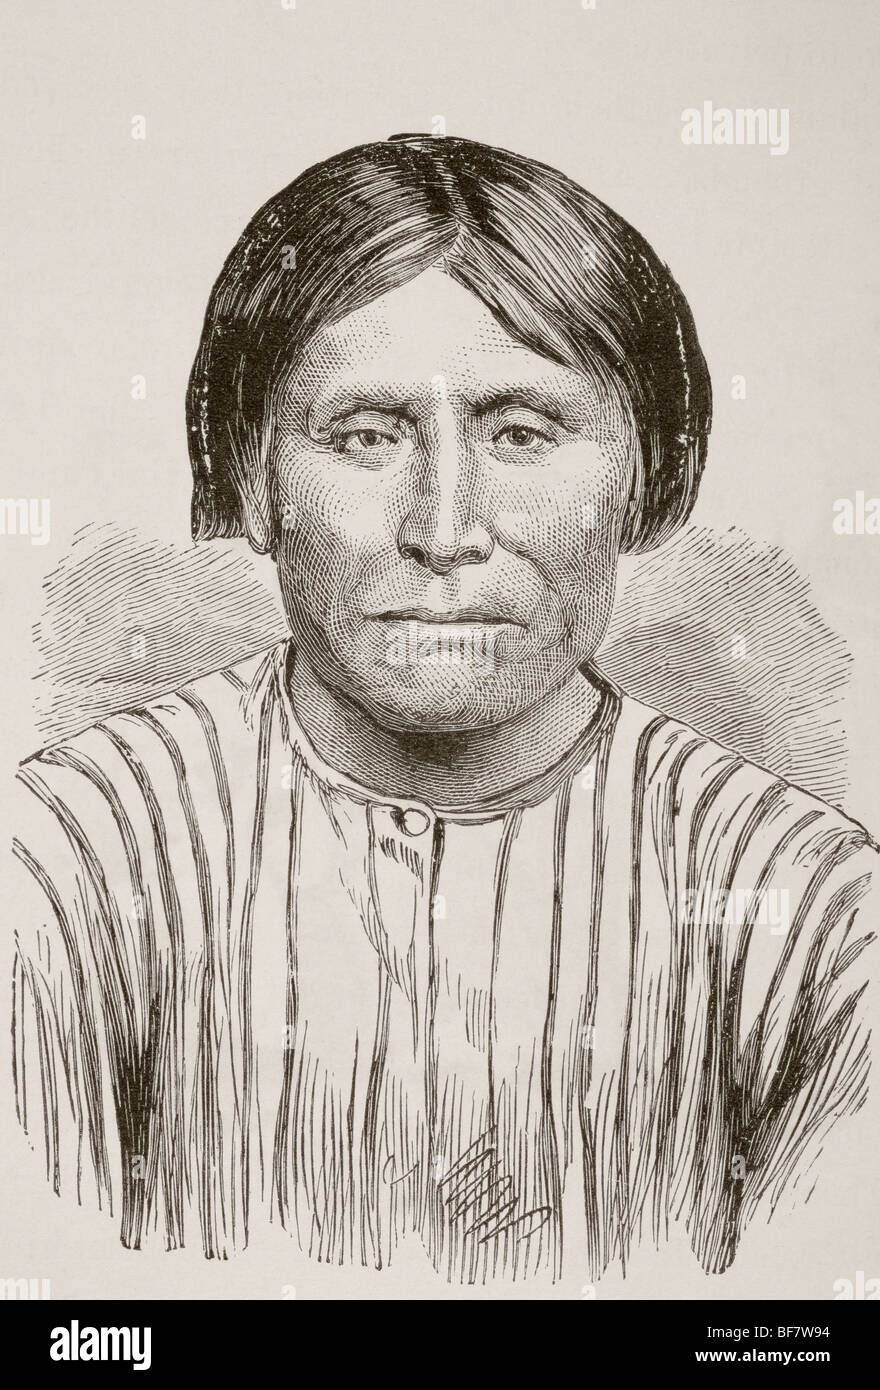 Kintpuash, known as Captain Jack circa 1837 to 1873. Chief of the American Indian Modoc tribe of California and - Stock Image